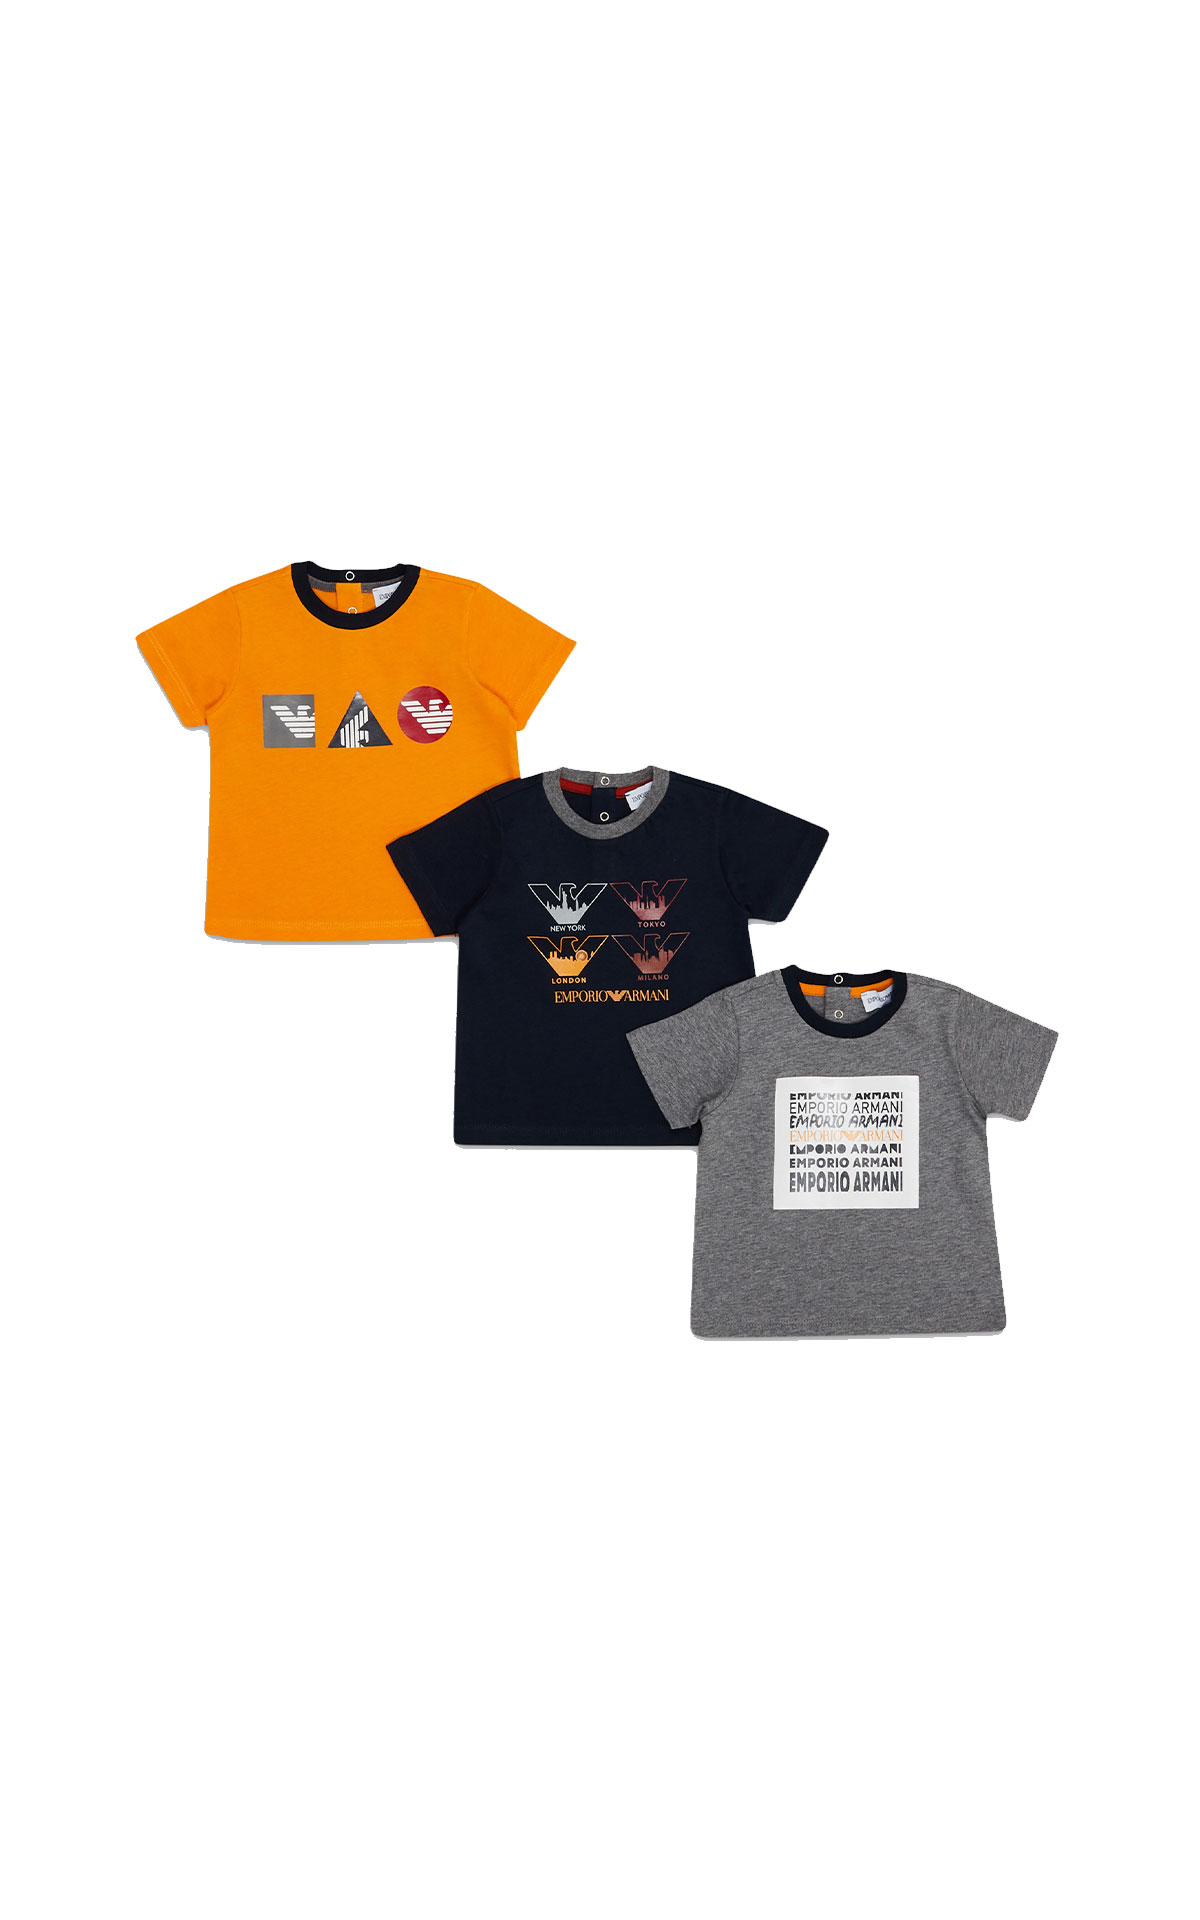 Armani Baby t-shirt set from Bicester Village